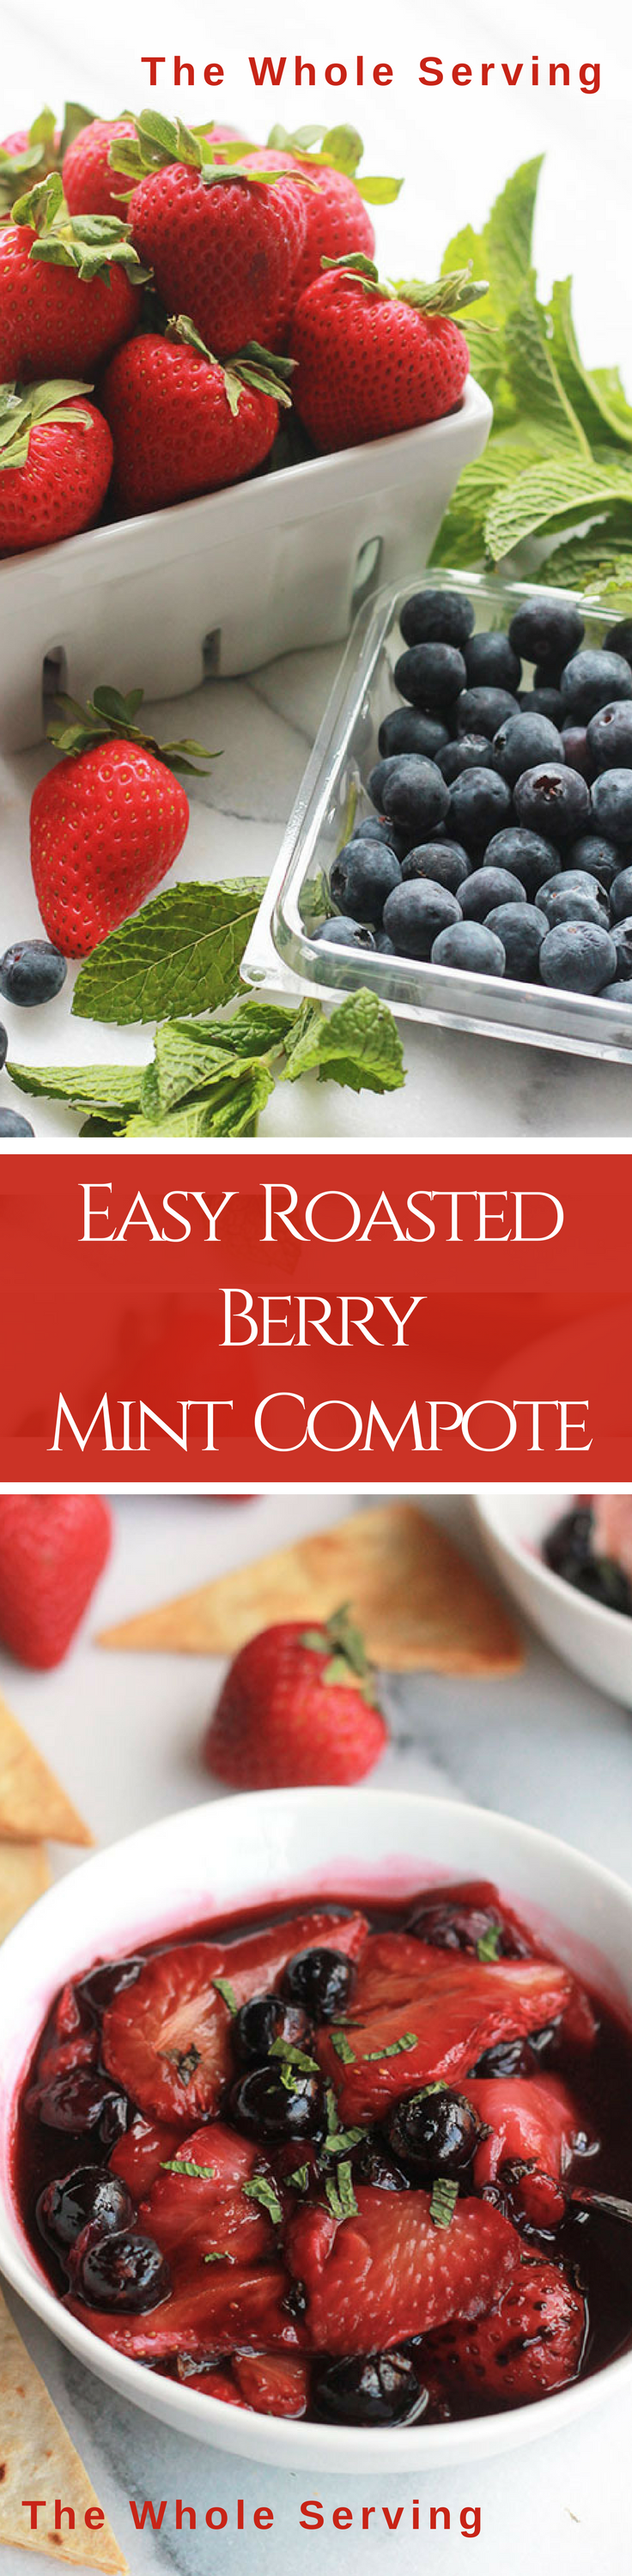 Easy Roasted Berry Mint Compote - Super easy, fruity and delicious! It's perfect for breakfast toppings, snacks desserts and so much more.